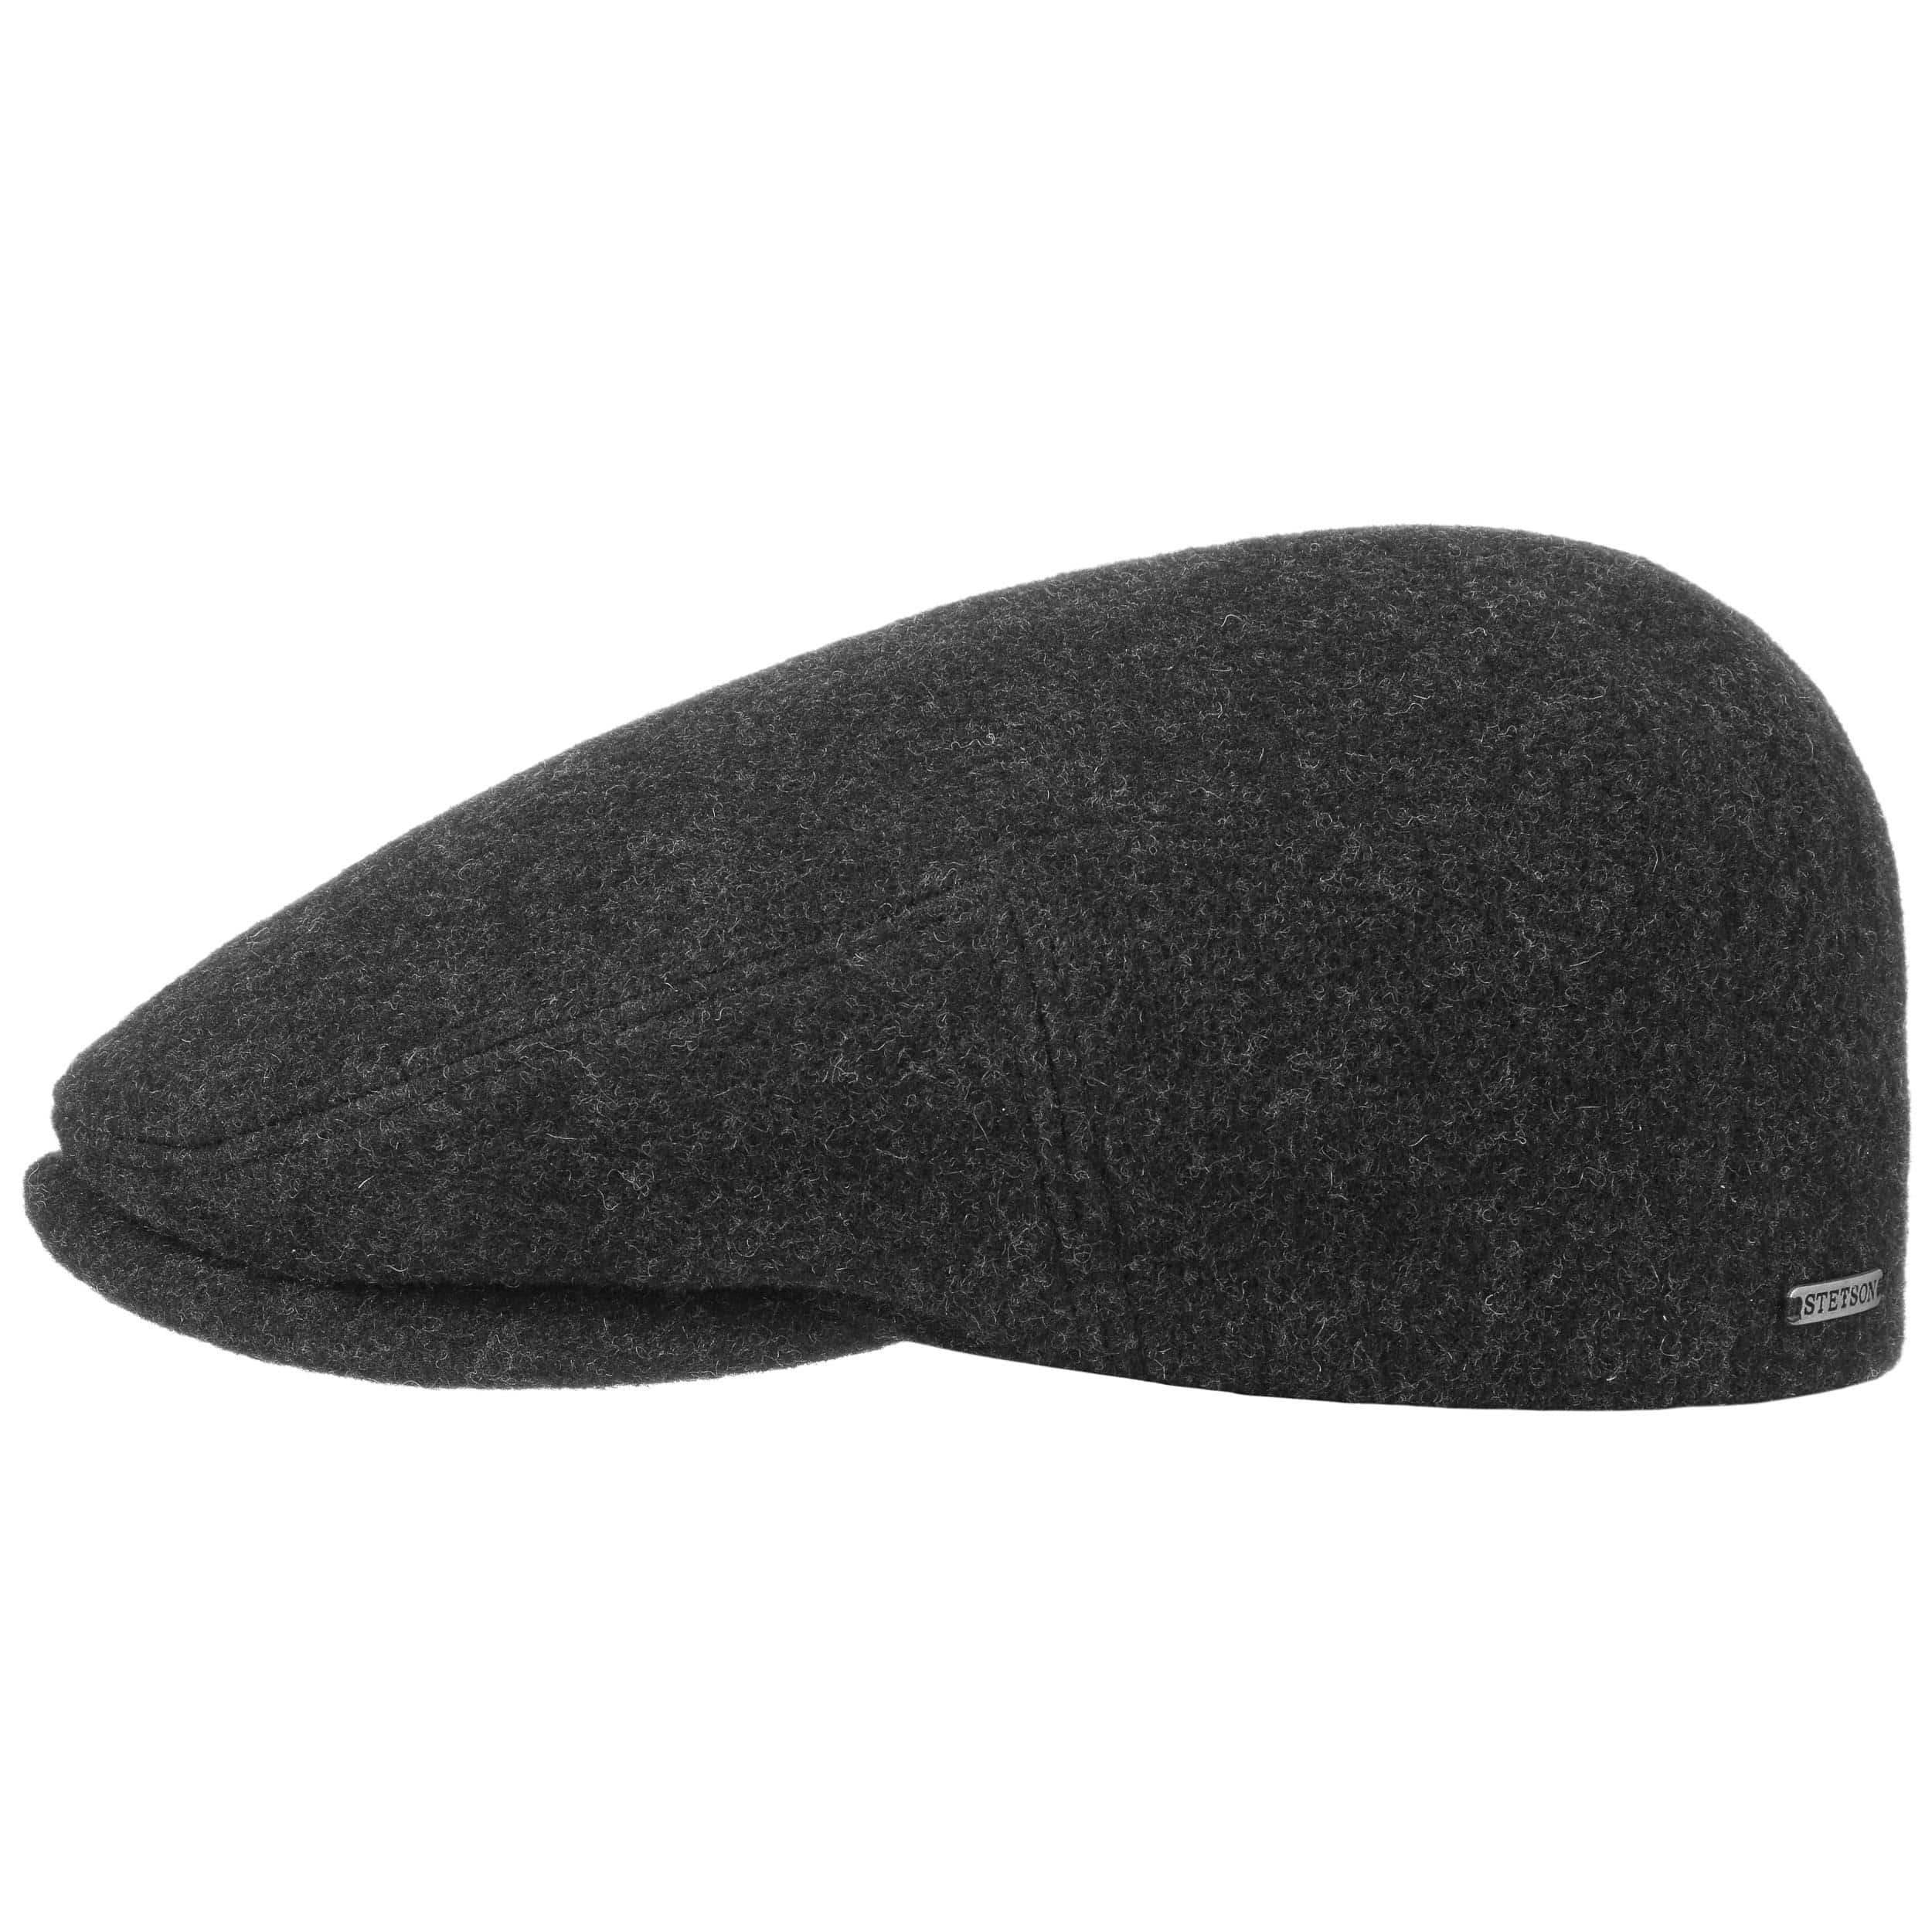 ... Kent Wool Earflaps Flat Cap by Stetson - anthracite 6 ... 5e7d0dbacad